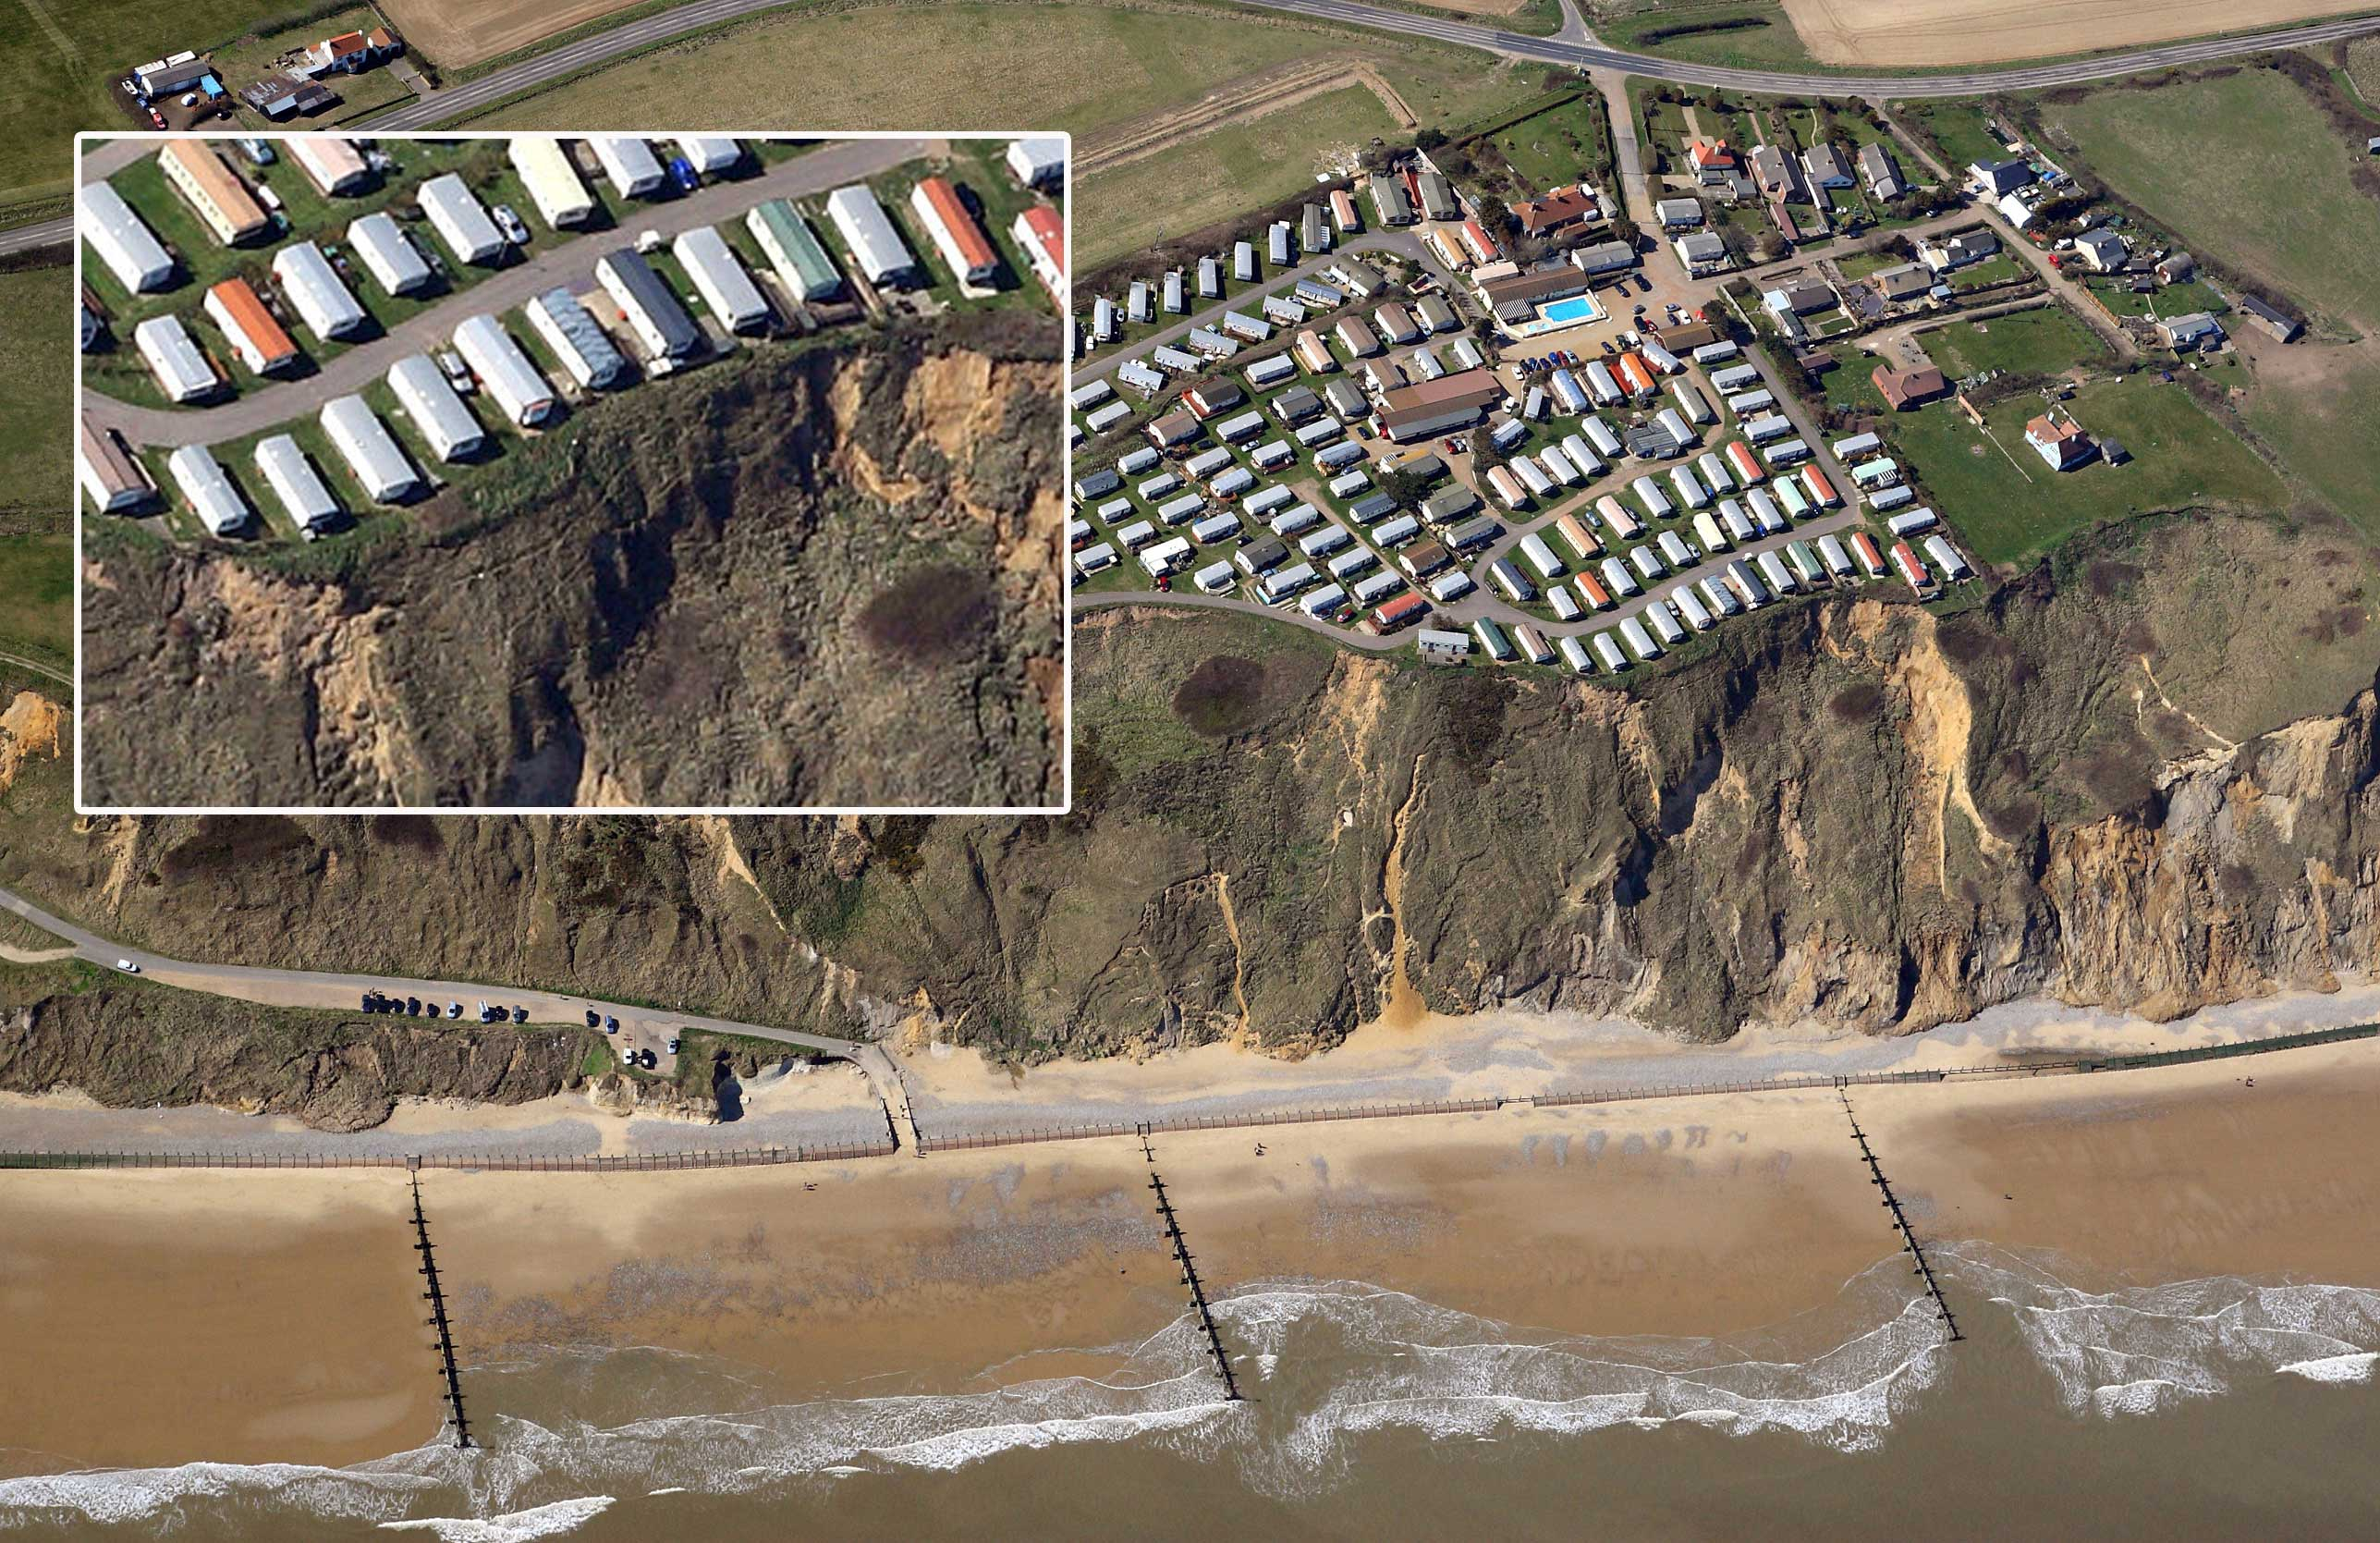 Seaside caravans were left teetering on the edge of a cliff after a huge landslide near Cromer in Norfolk (Picture: SWNS)